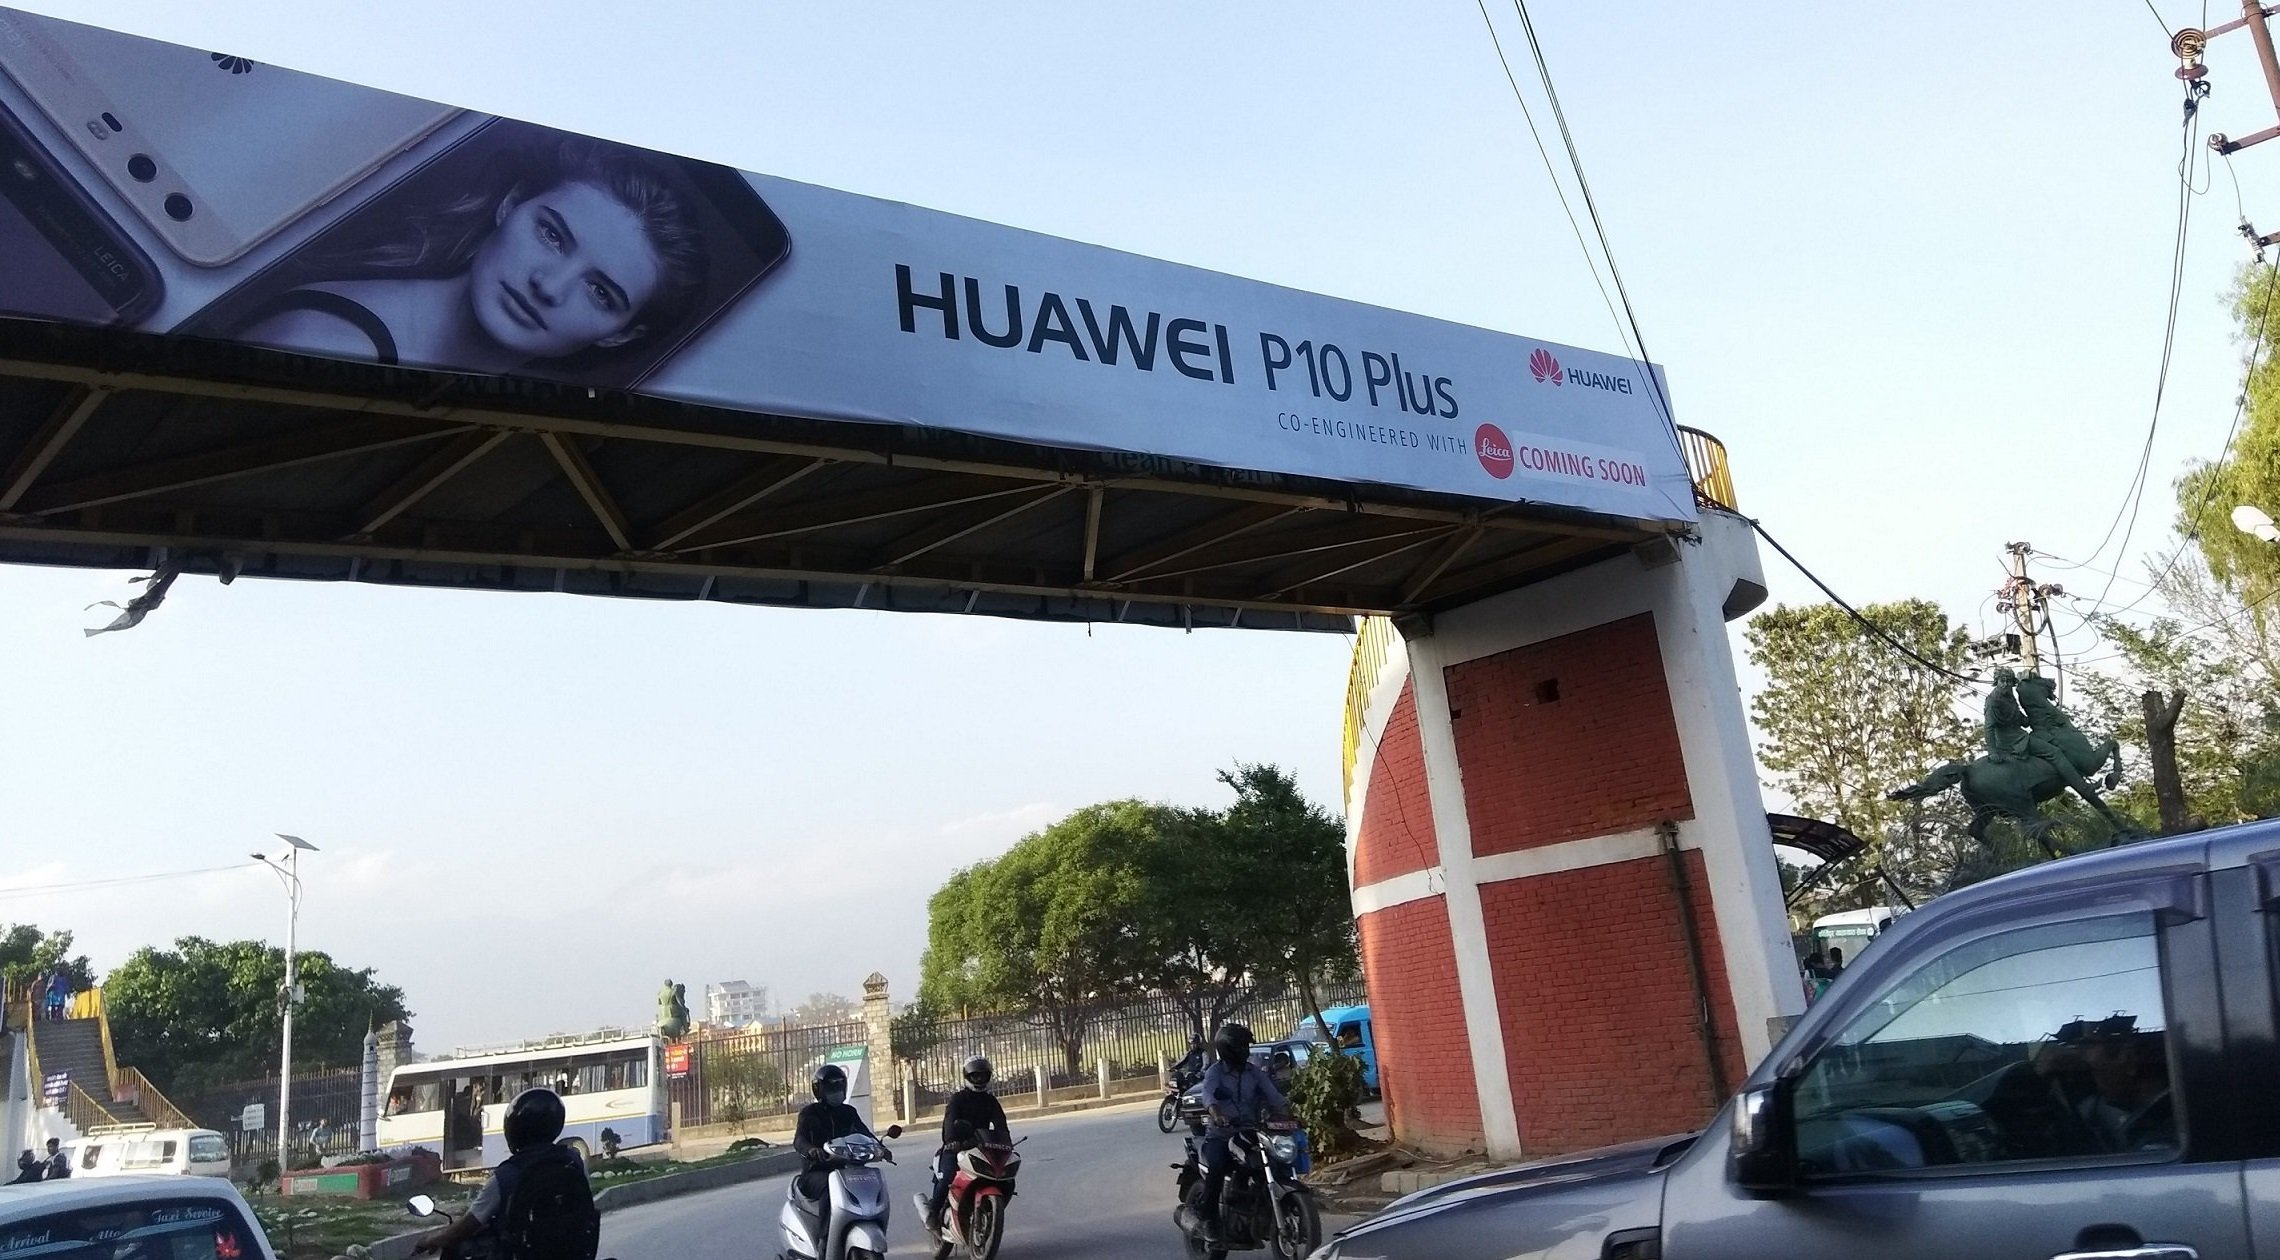 huawei p10 plus in Nepal